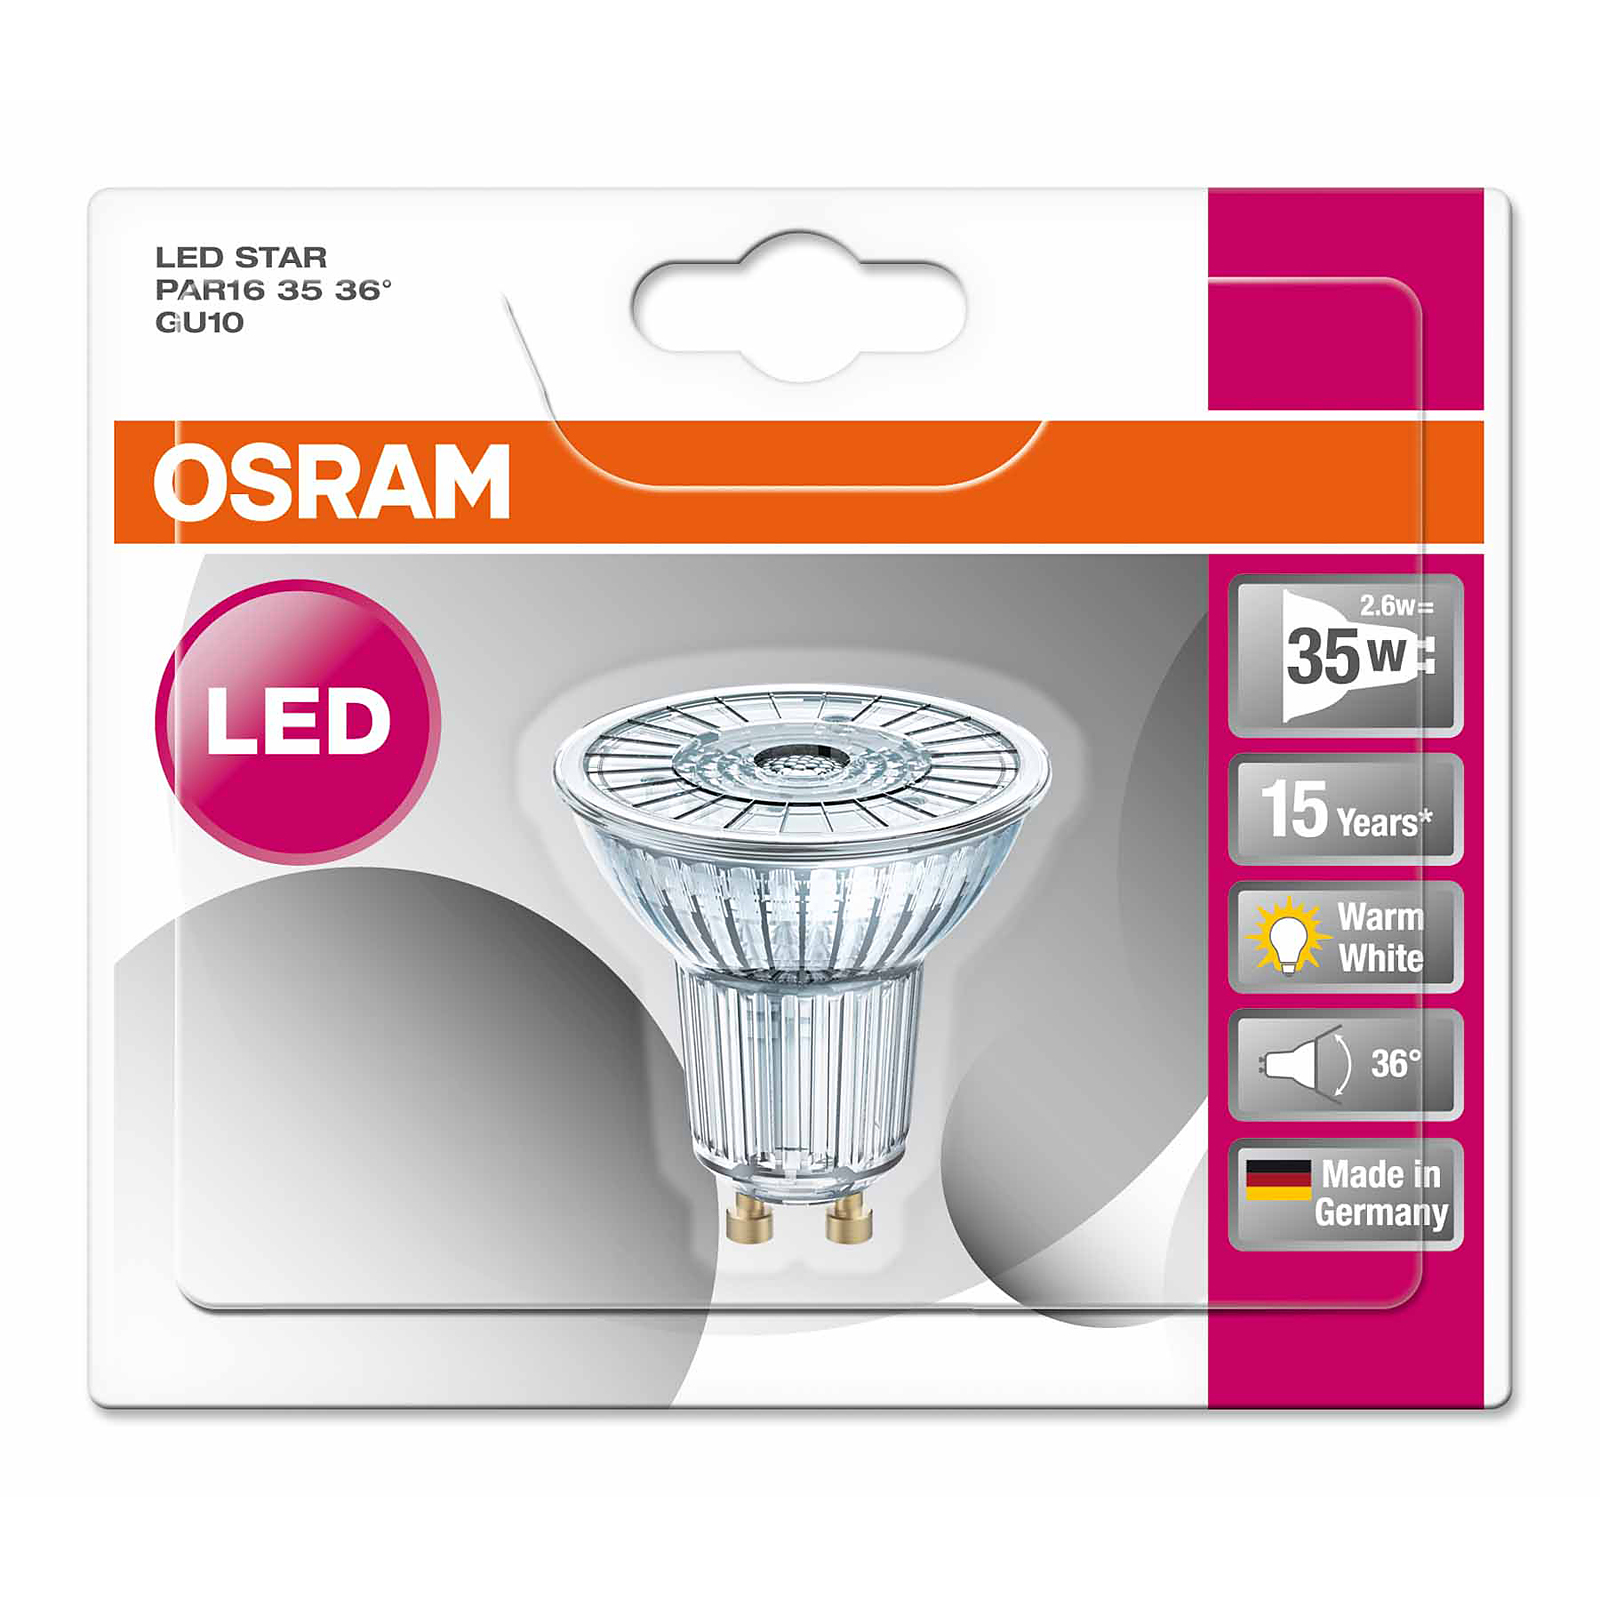 osram led star par16 35 36 gu10 2 6watt ersatz f r 35 watt 230 lumen warmwei ebay. Black Bedroom Furniture Sets. Home Design Ideas